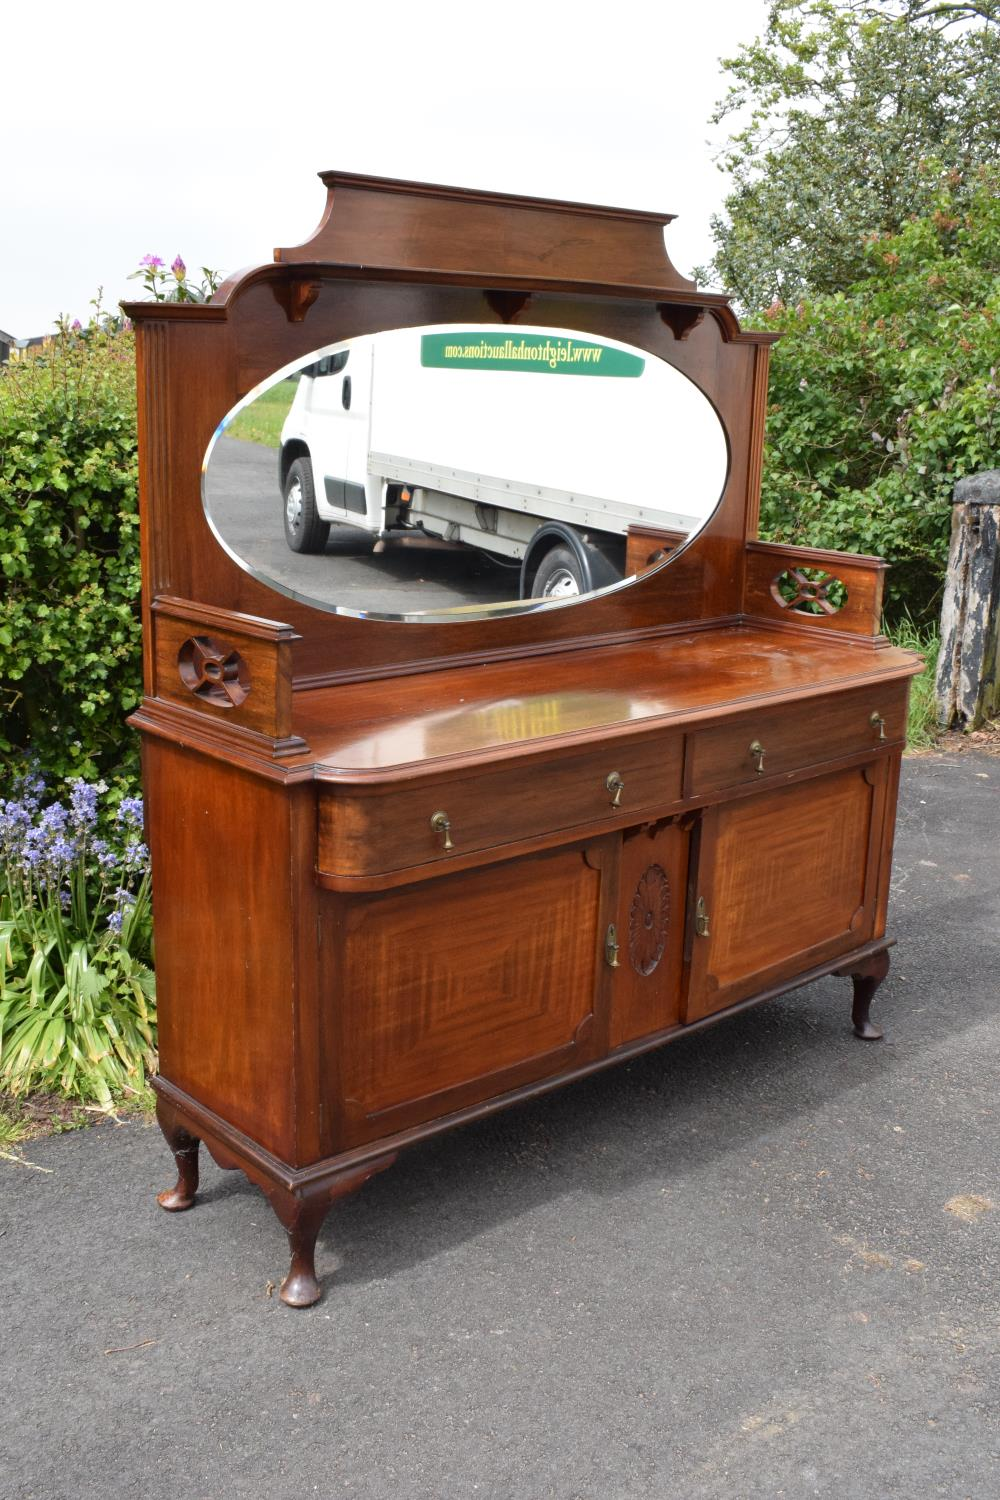 Edwardian mirror backed sideboard/ drinks cabinet. 168 x 56 x 183cm. The top section lifts off and - Image 4 of 11